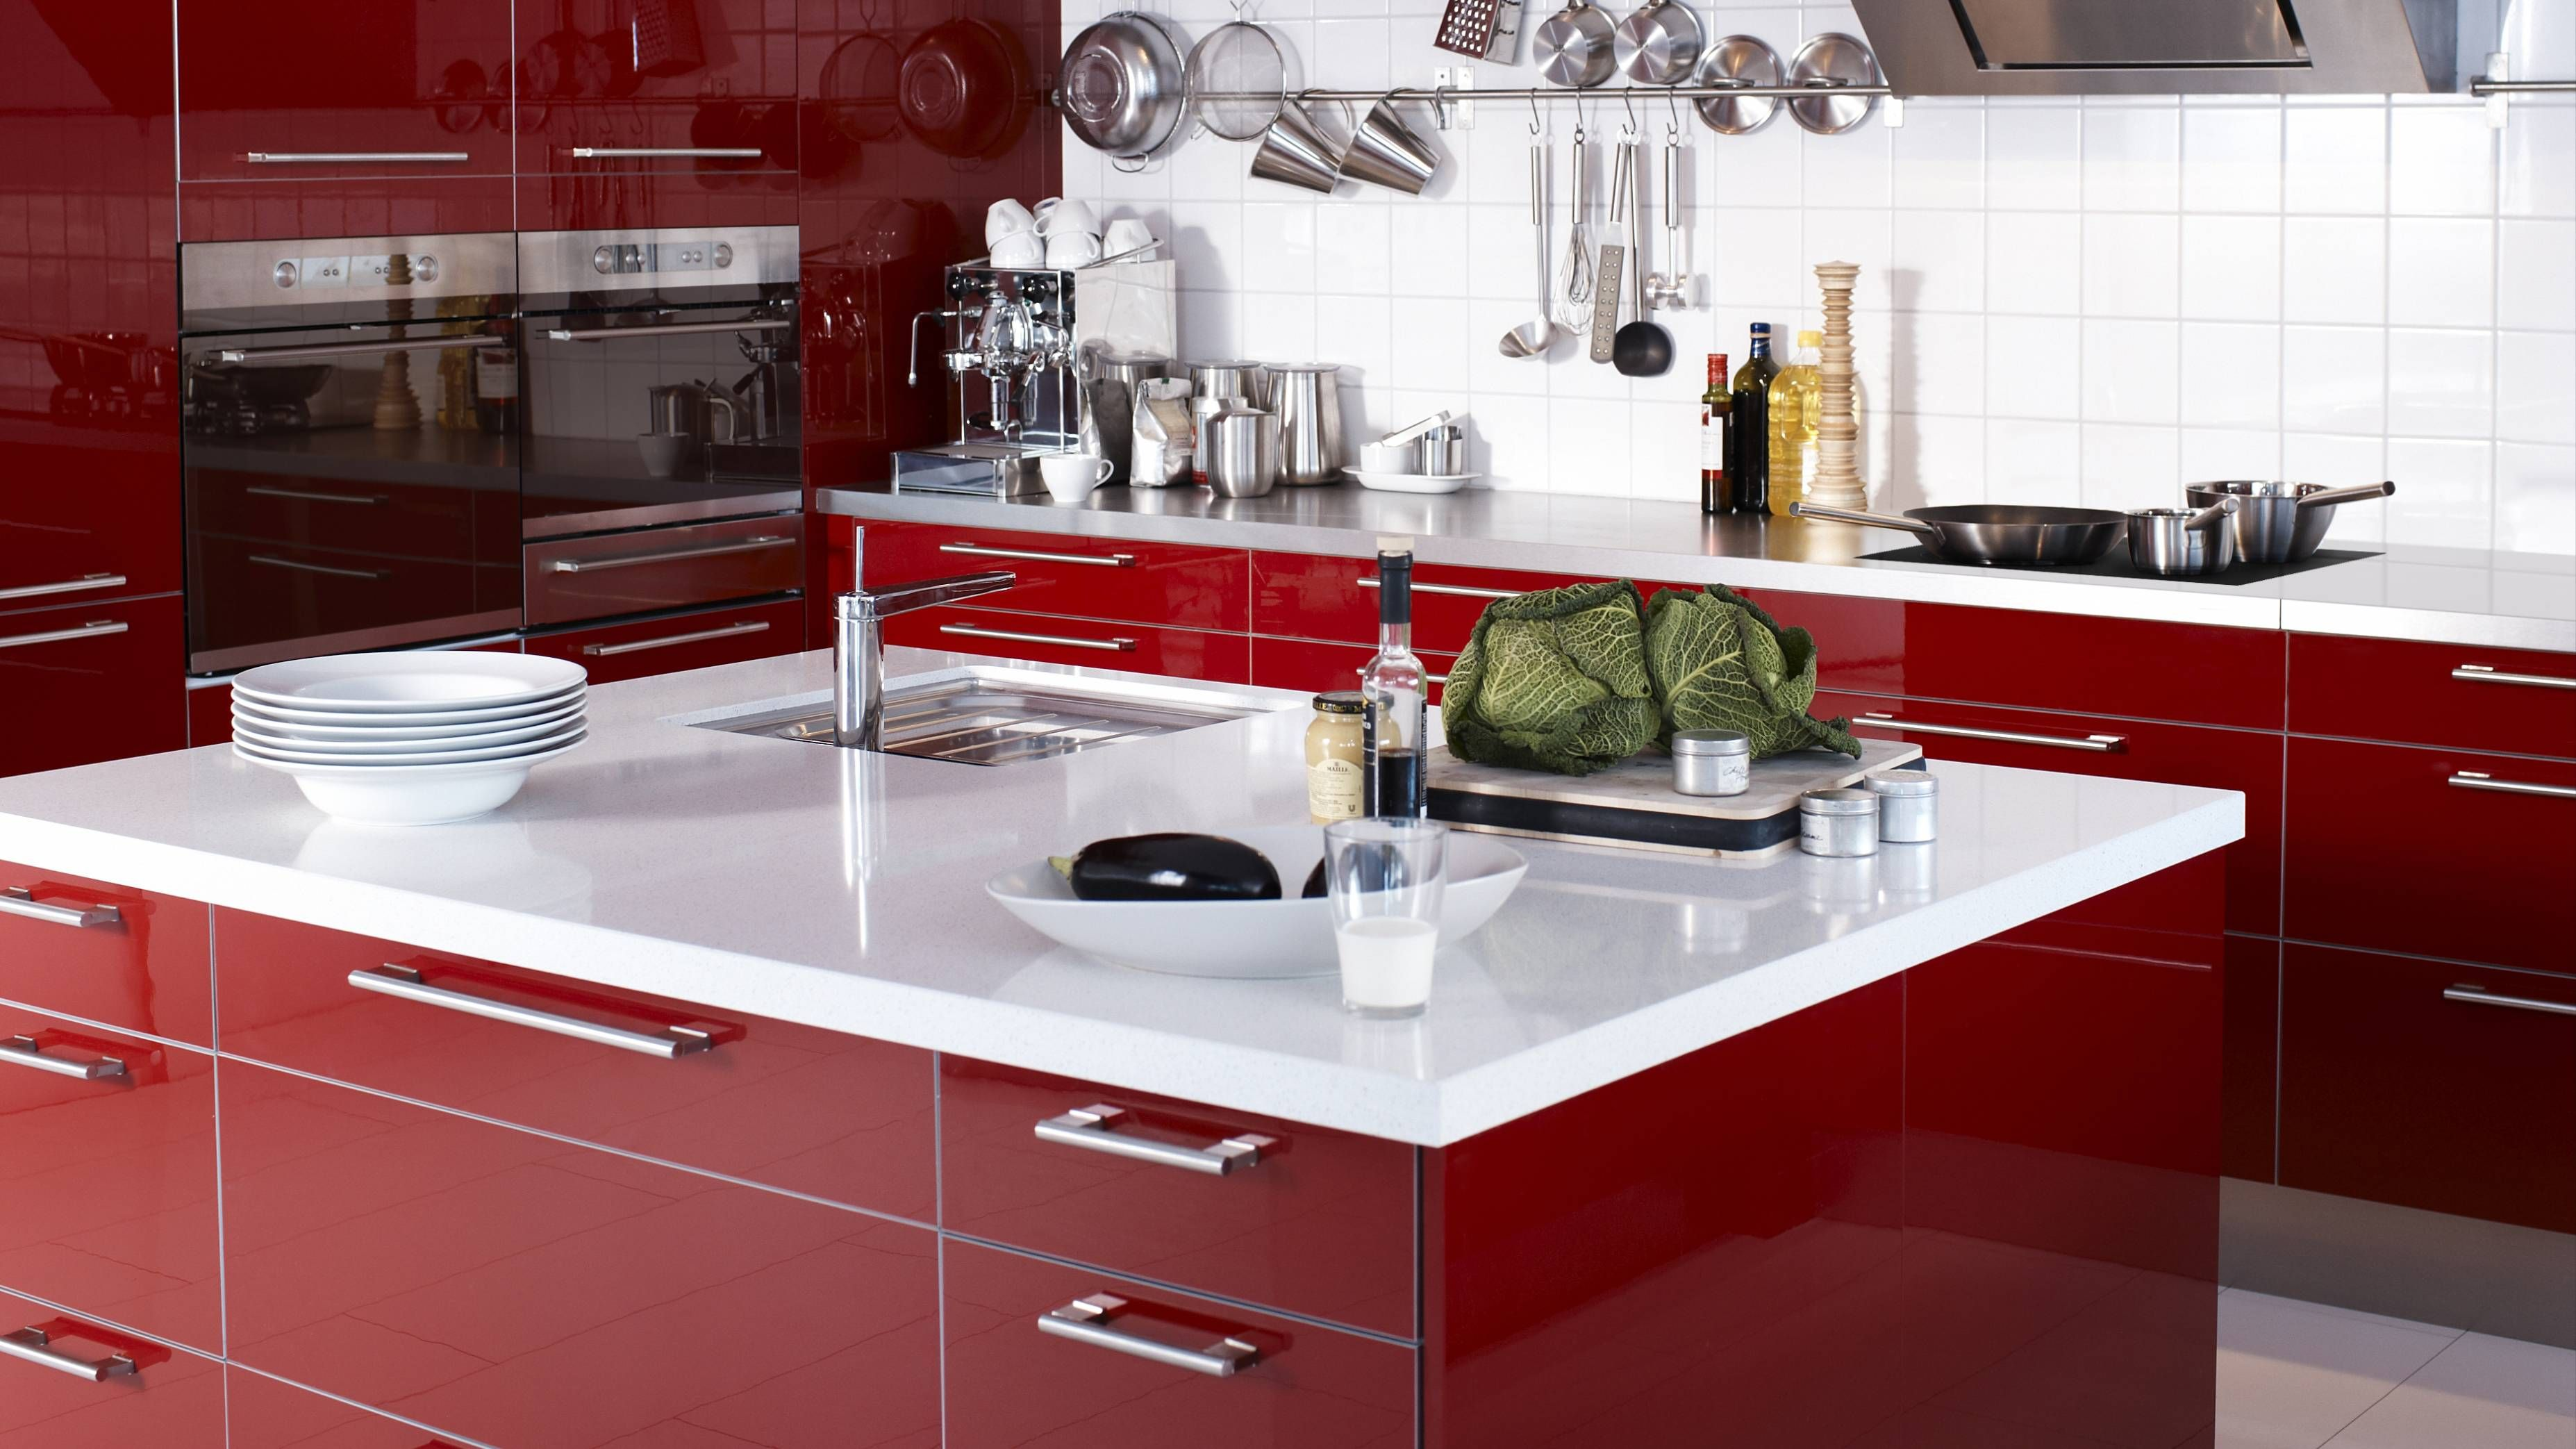 Kitchen furniture interior eye catching glossy red acrylic kitchen